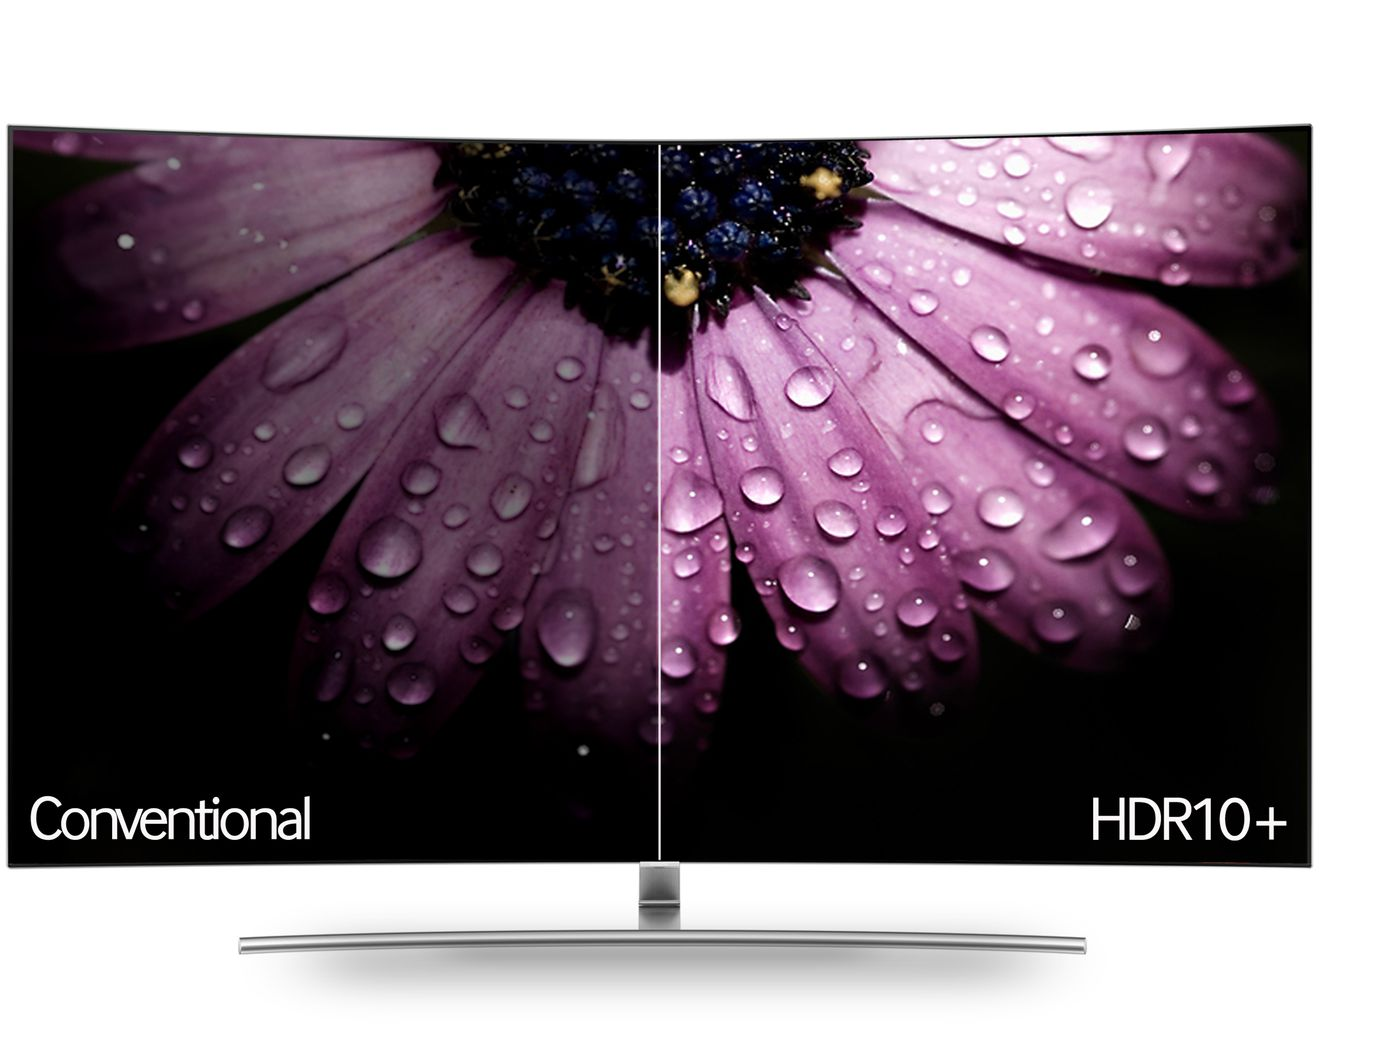 Samsung TU7100 hdr 10+ difference